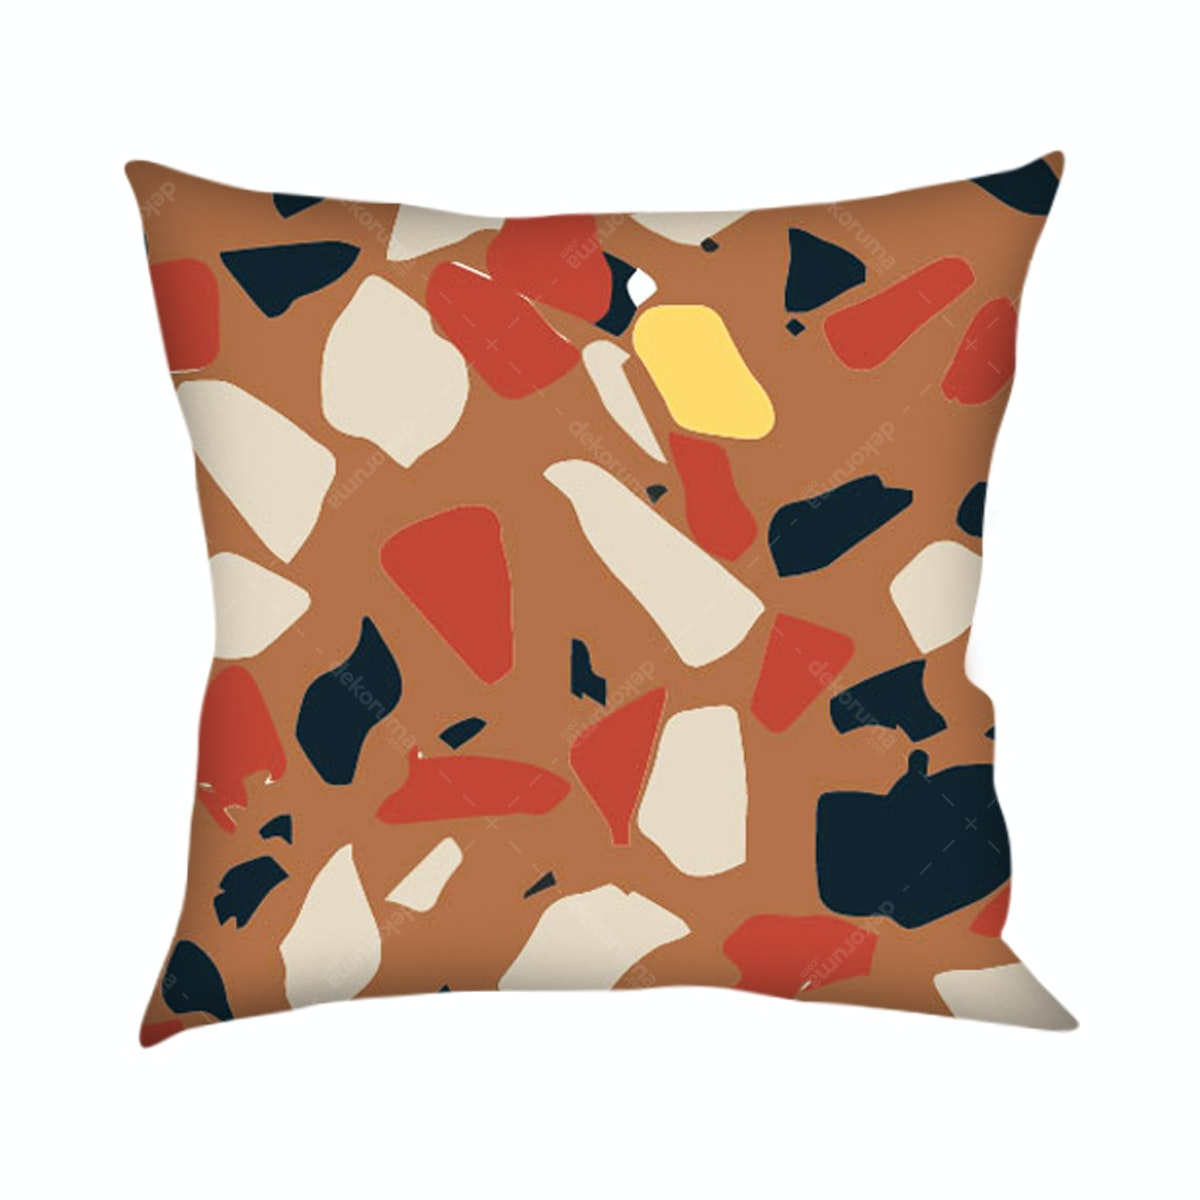 On&On Terrazzo 5 Cushion 40x40cm (Insert+Cover)